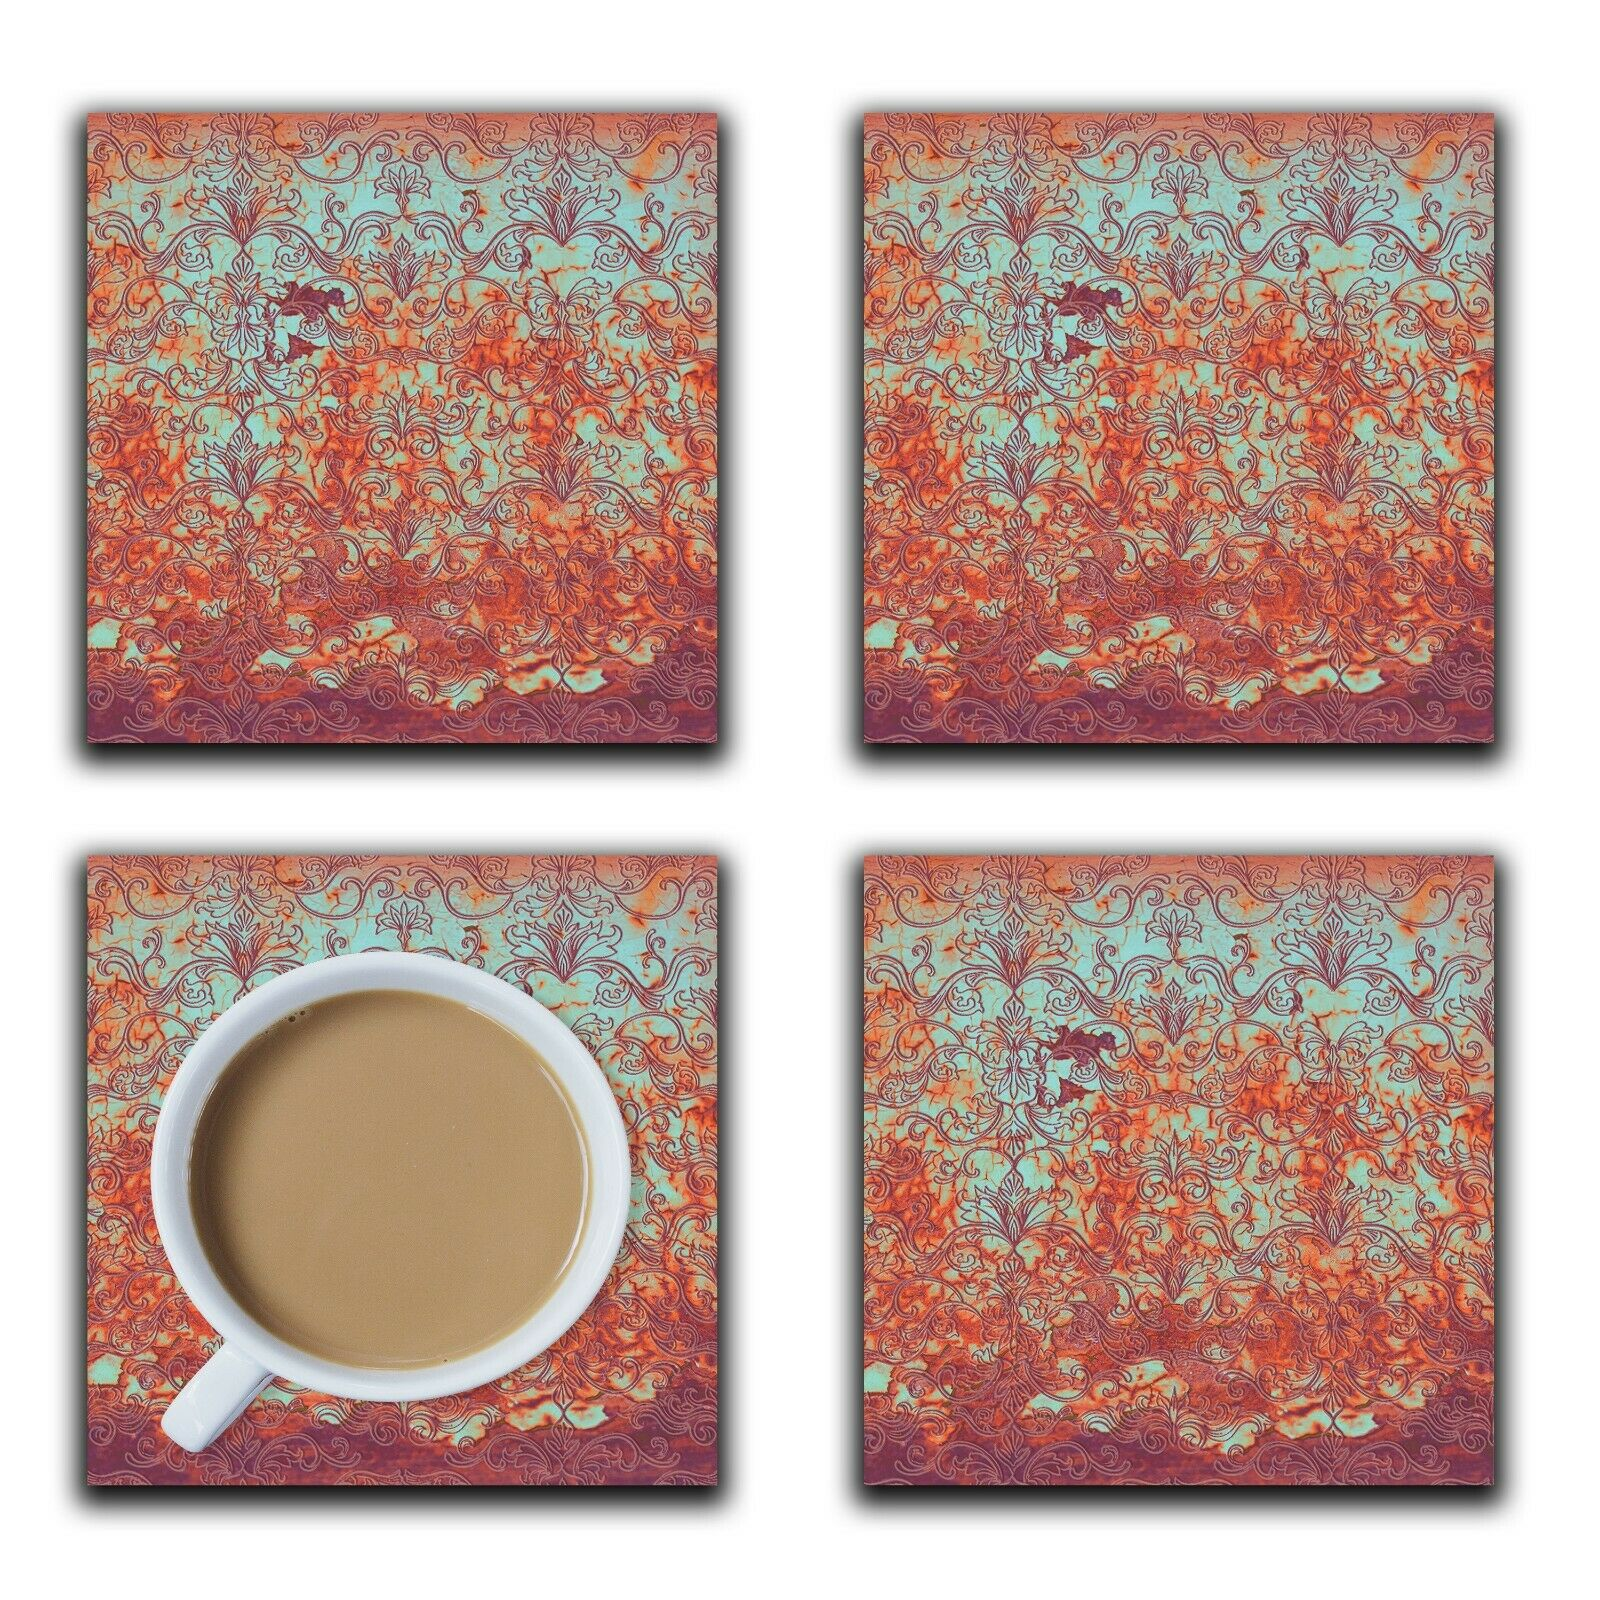 Embossi Printed Rusty Blue Damask Metal Look, wood or ceramic tile, set of 4 Coasters